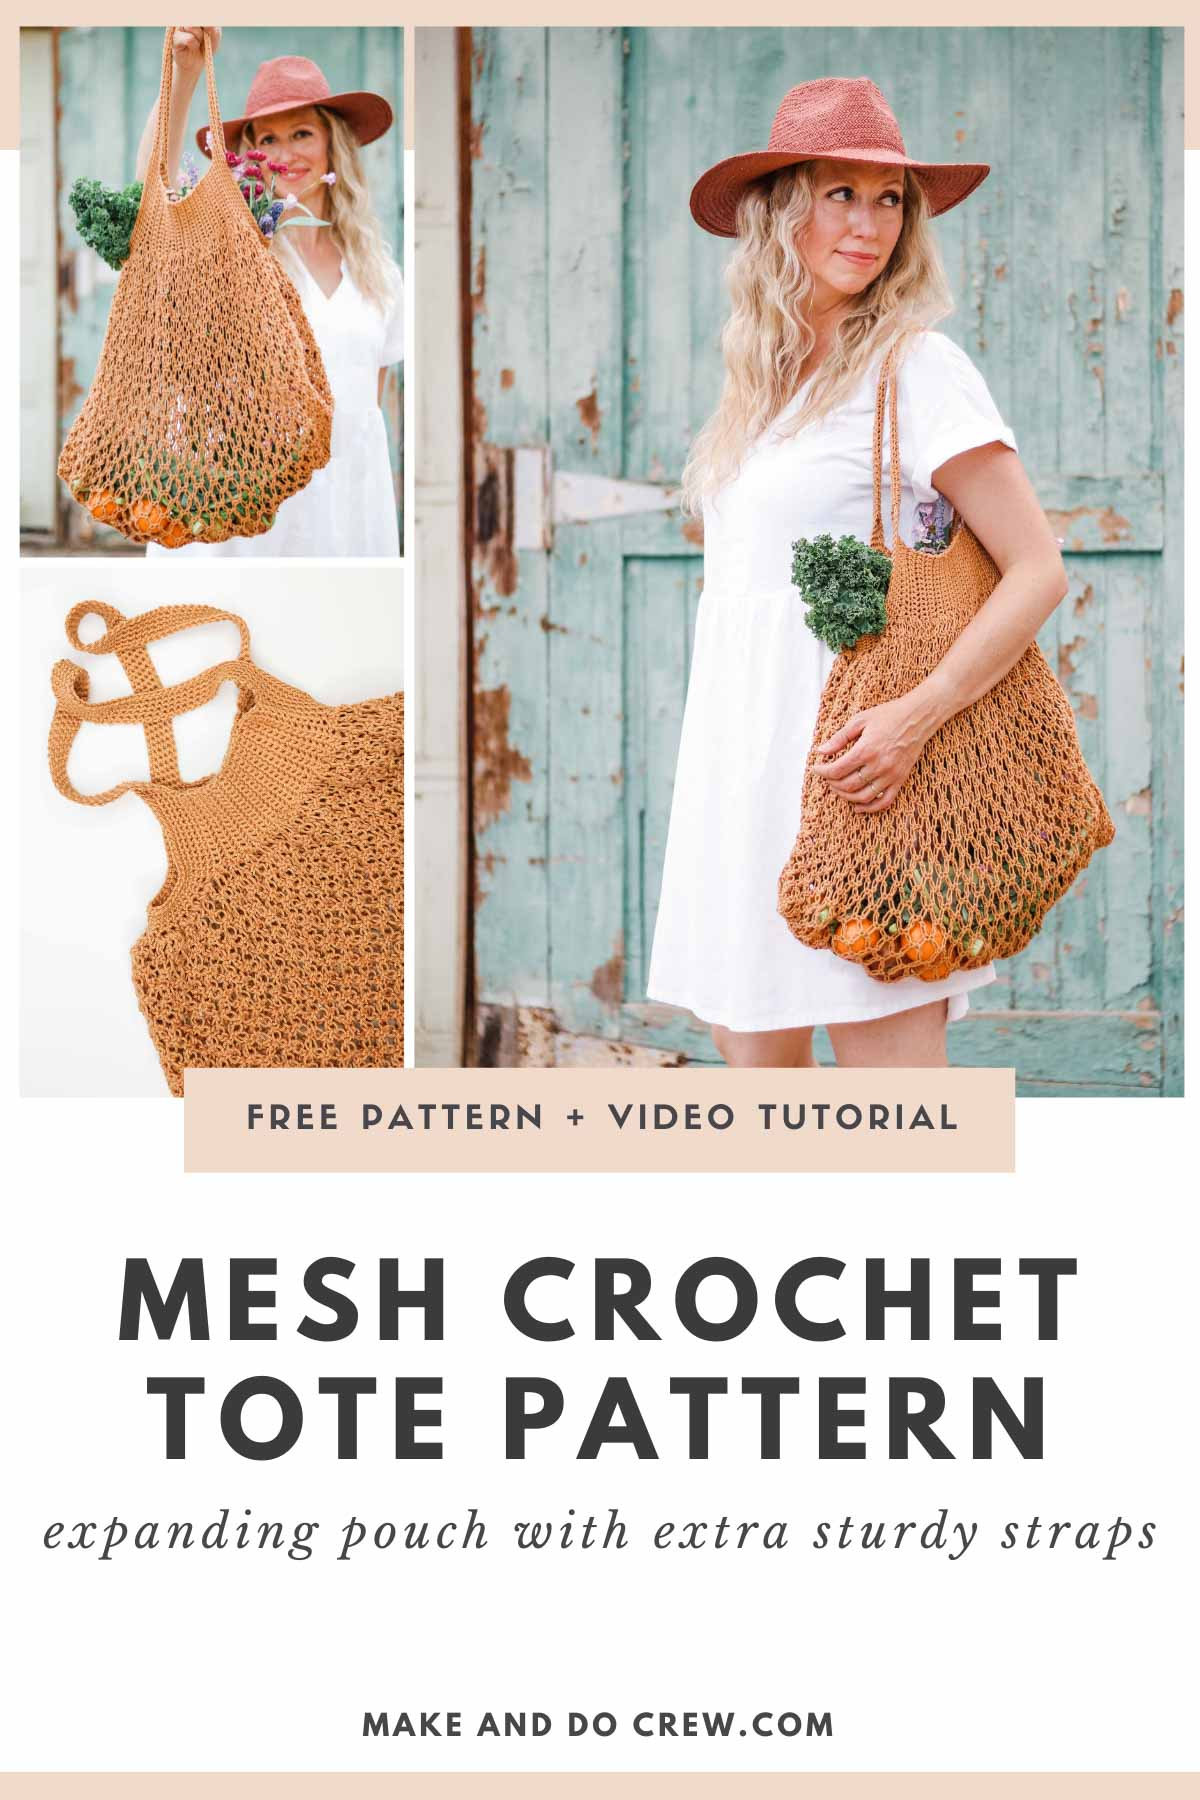 A grid of images showing a handmade crochet market tote bag made with sturdy cotton yarn.